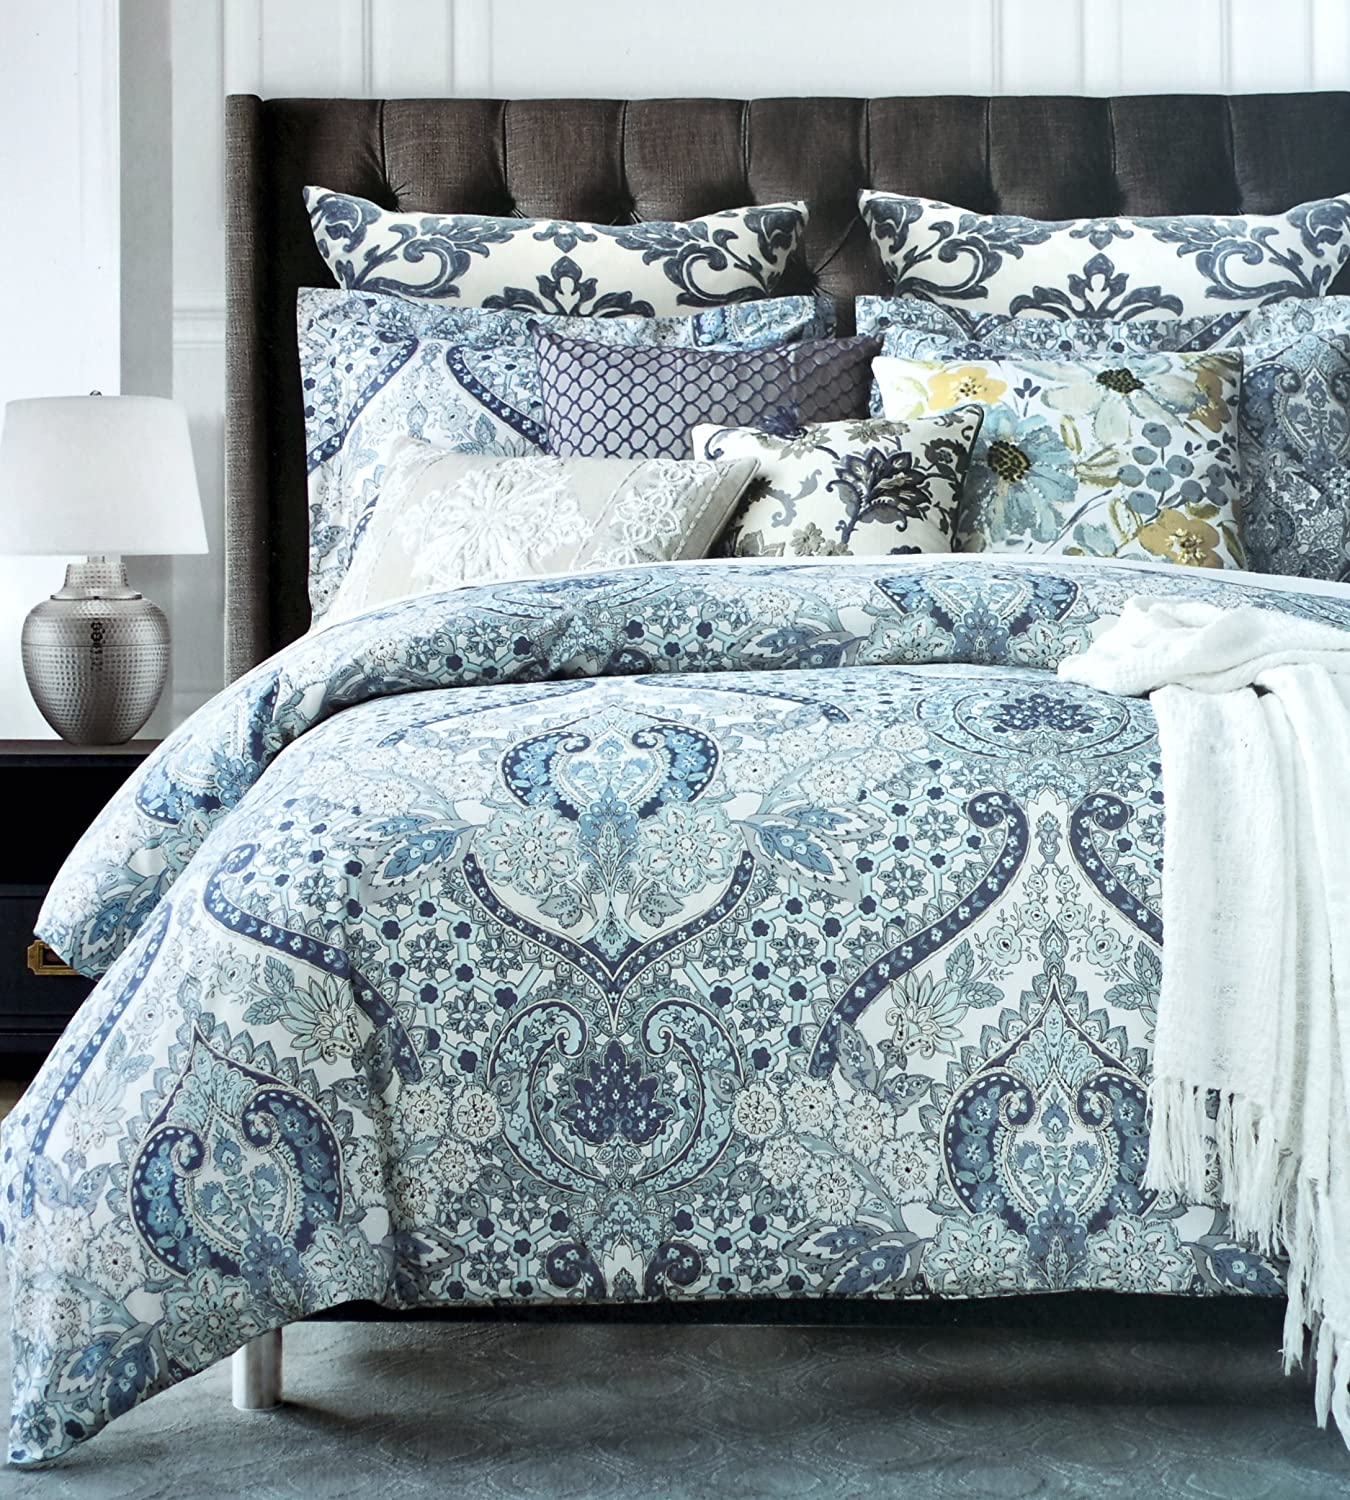 Tahari Home Luxury Bohemian Duvet Cover Luxury Eastern Floral Ornate Medallion Print in Blue Grey 3 Piece Bedding Set